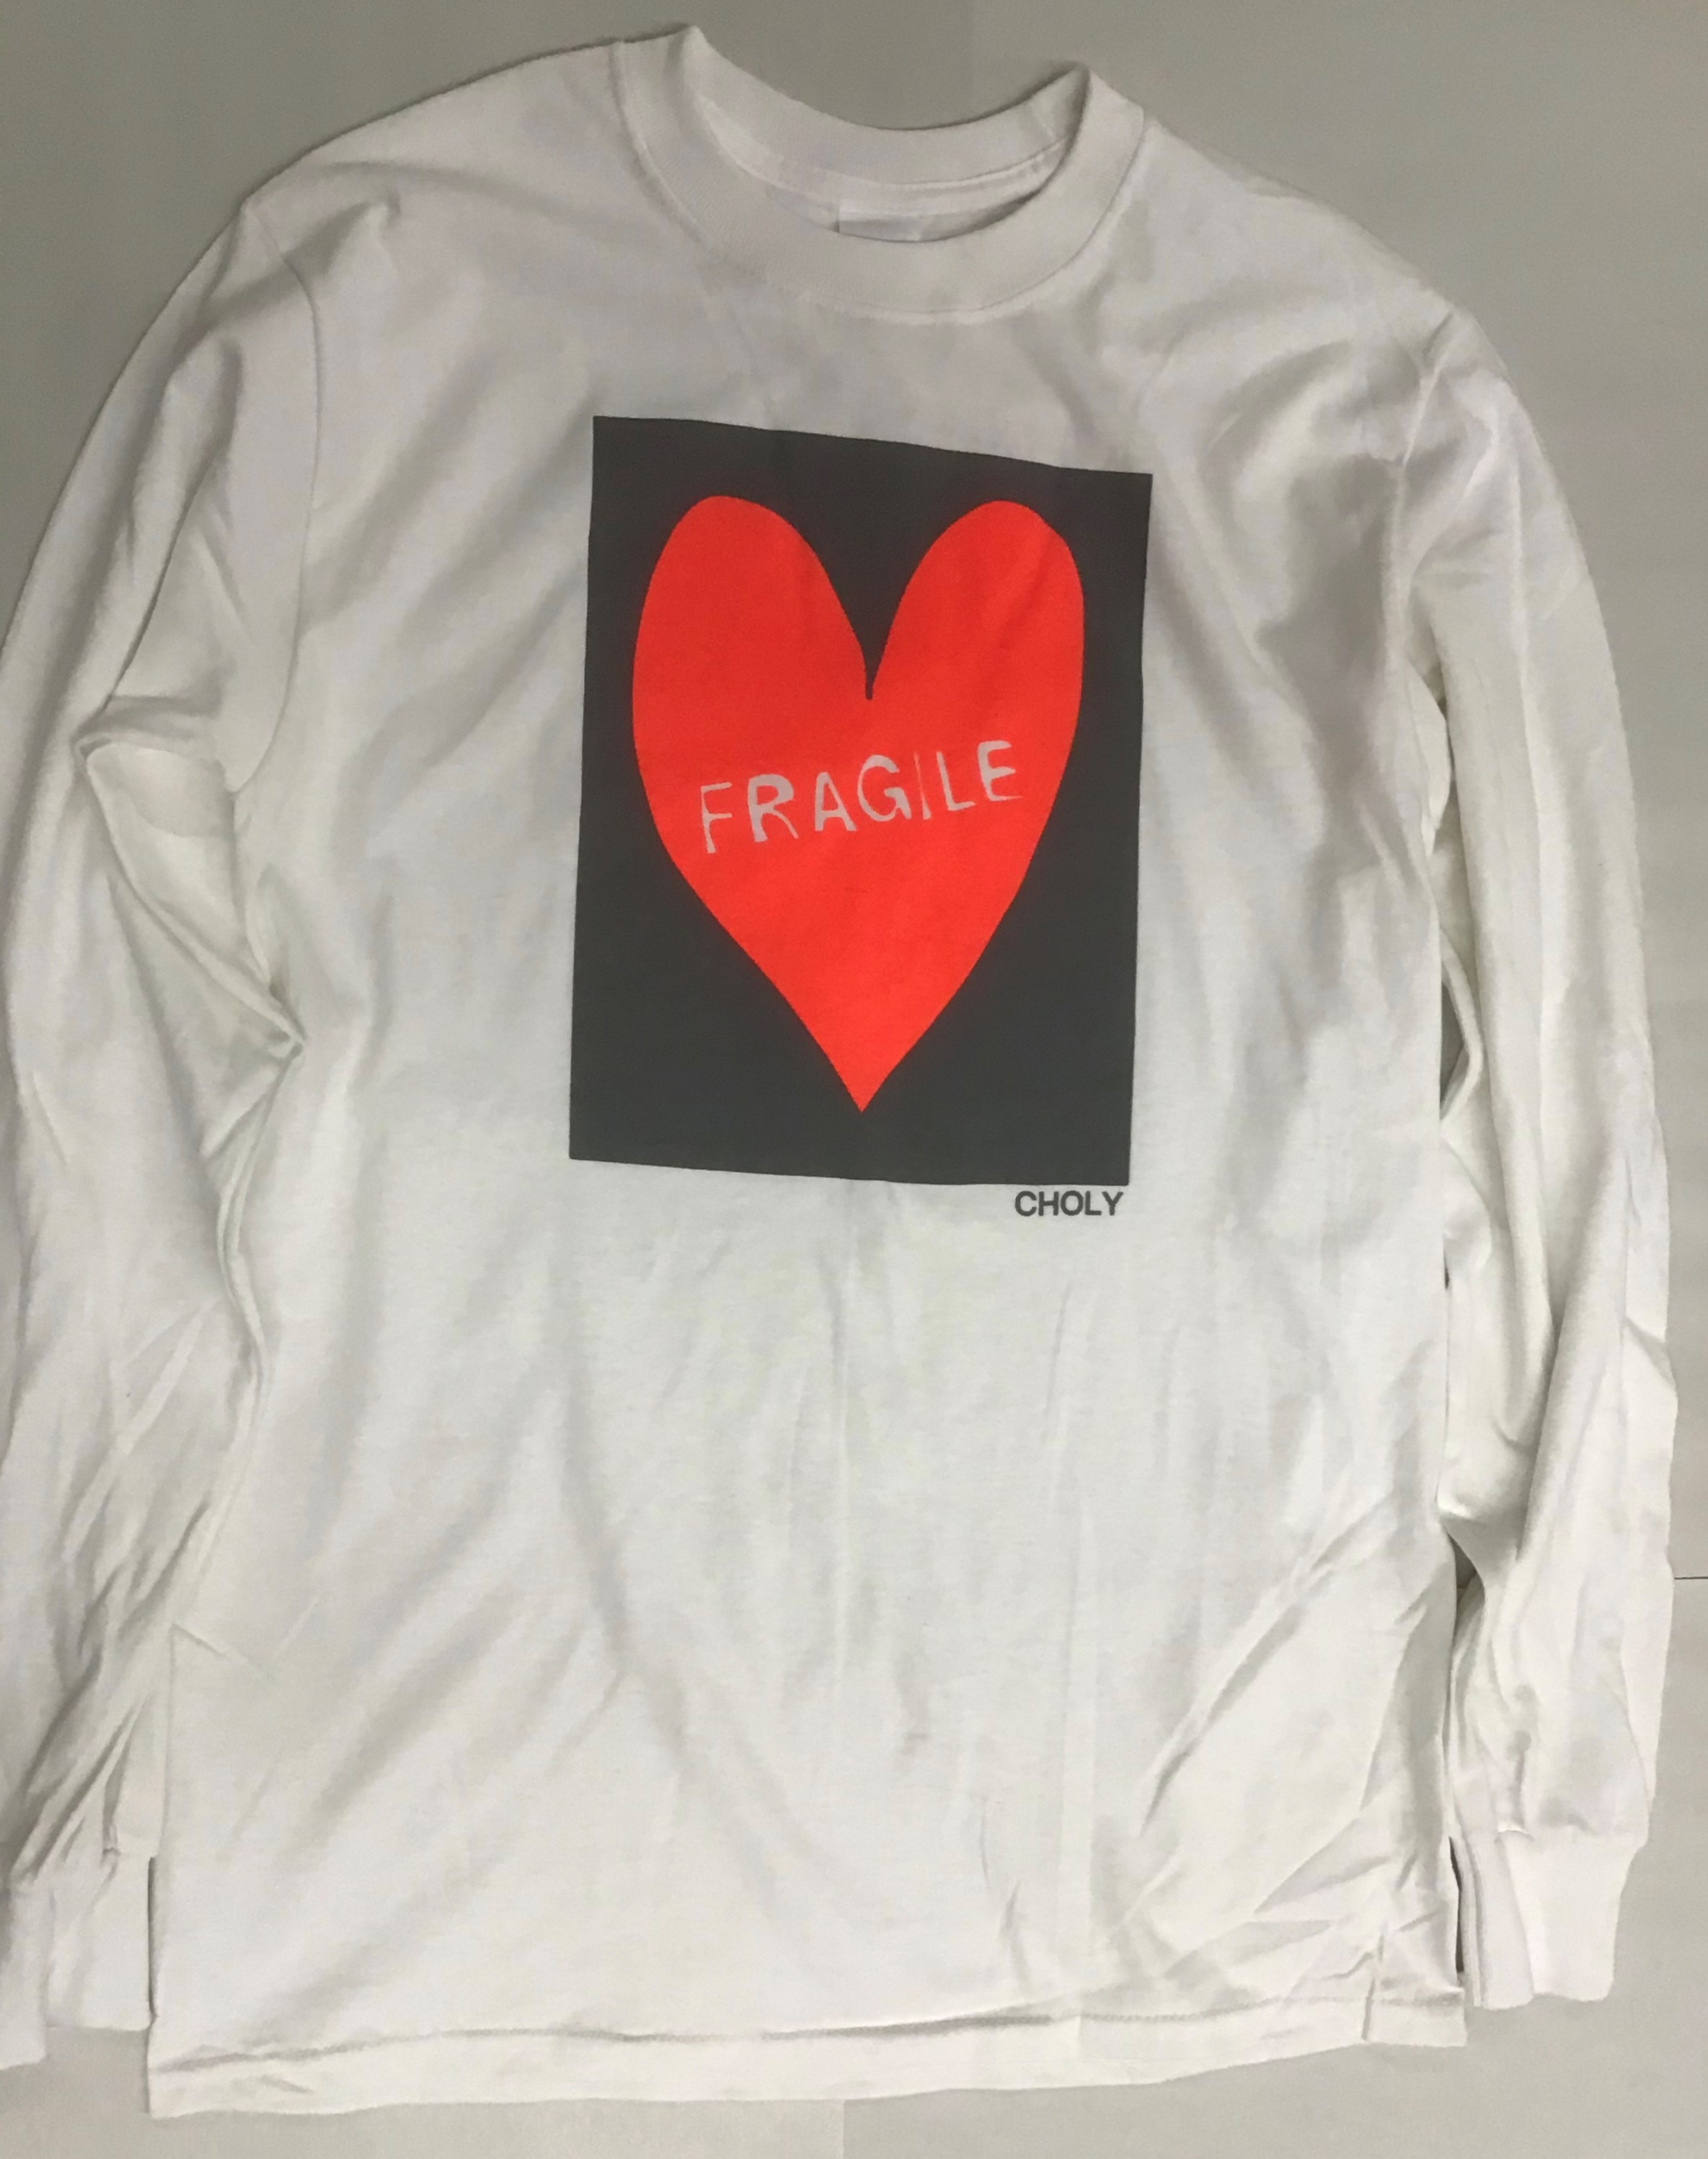 Shirt - Fragile